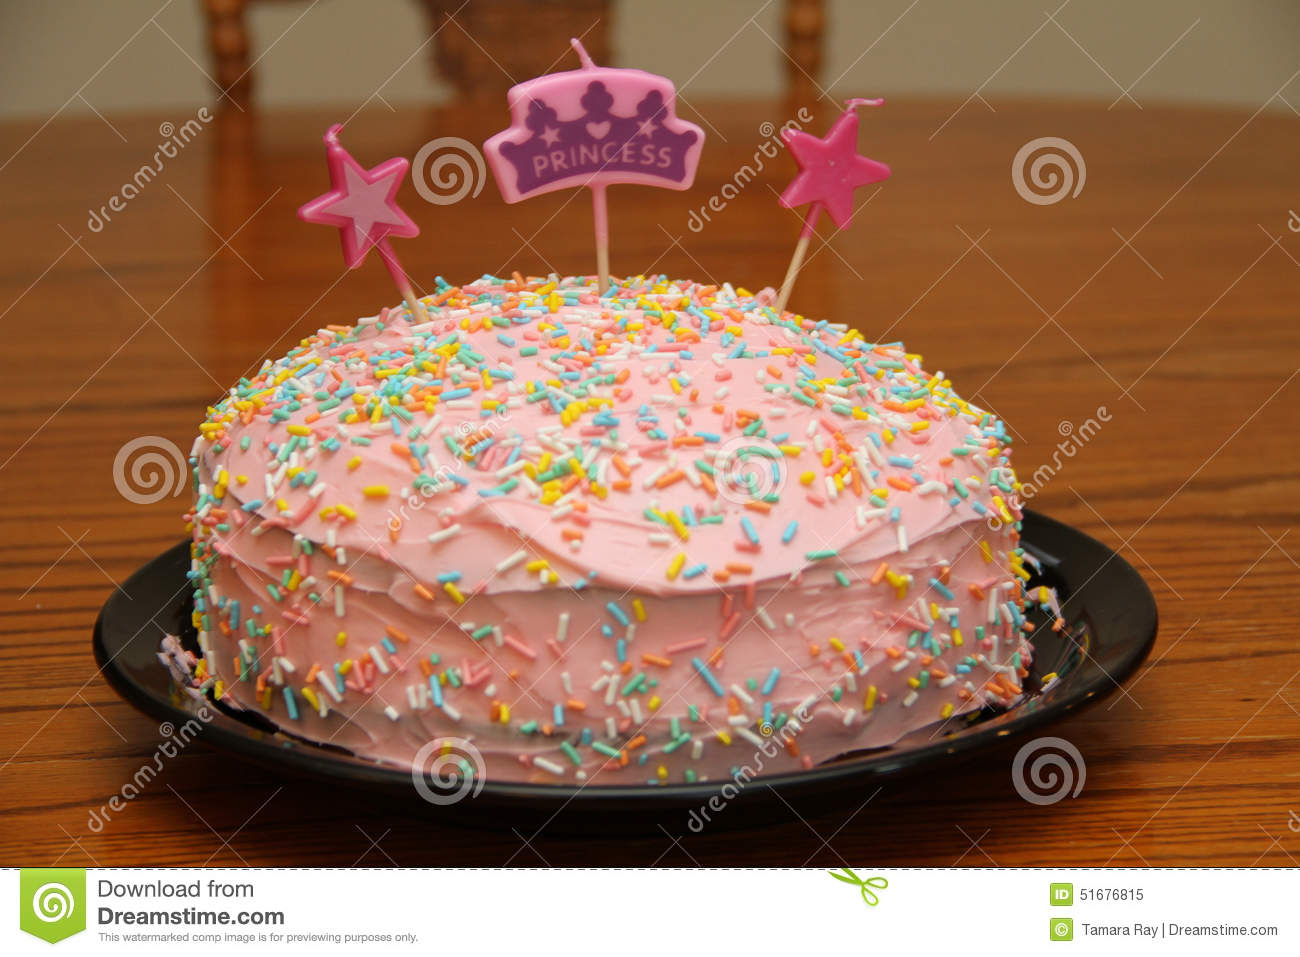 Wondrous Princess Birthday Cake Stock Image Image Of Pink Cream 51676815 Personalised Birthday Cards Veneteletsinfo